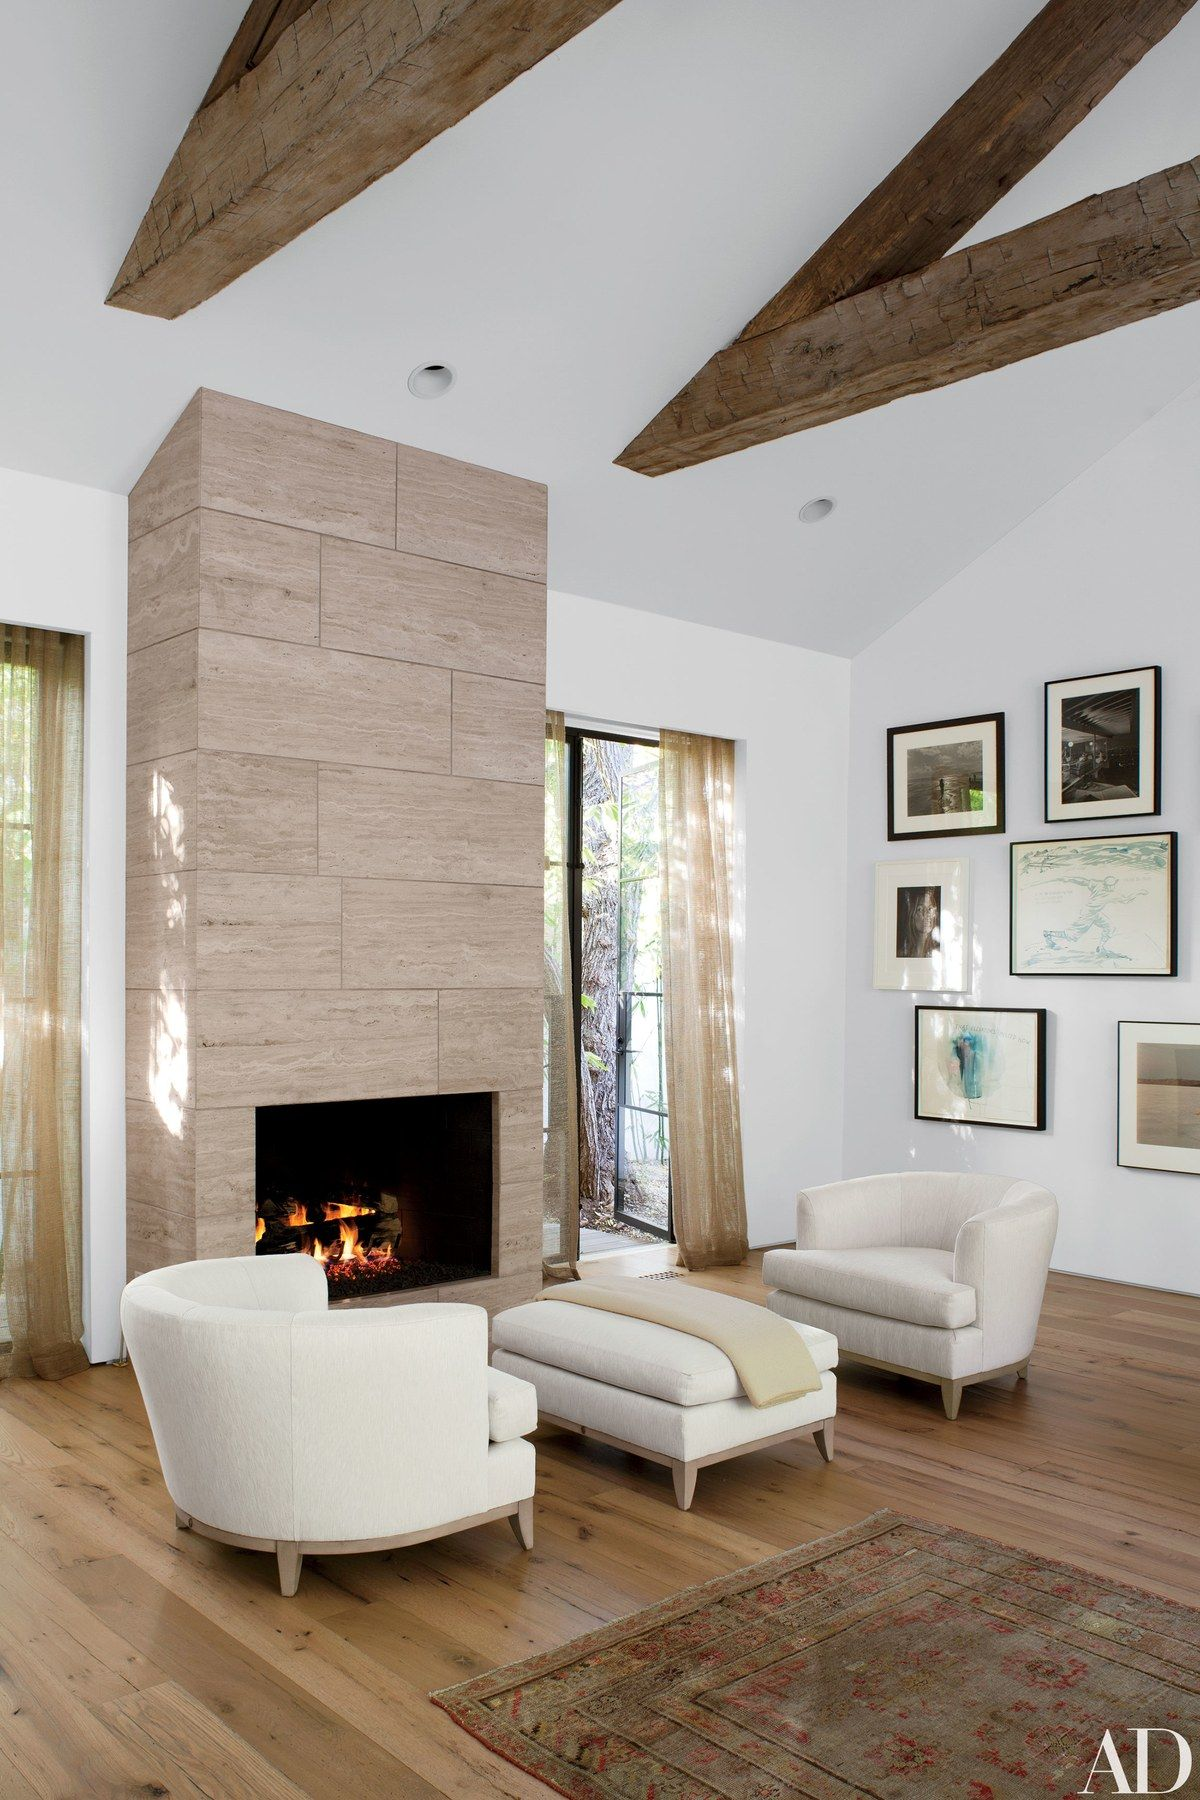 Fashion Designer Jenni Kayne S House In Beverly Hills With Images Contemporary Bedroom Home Celebrity Houses